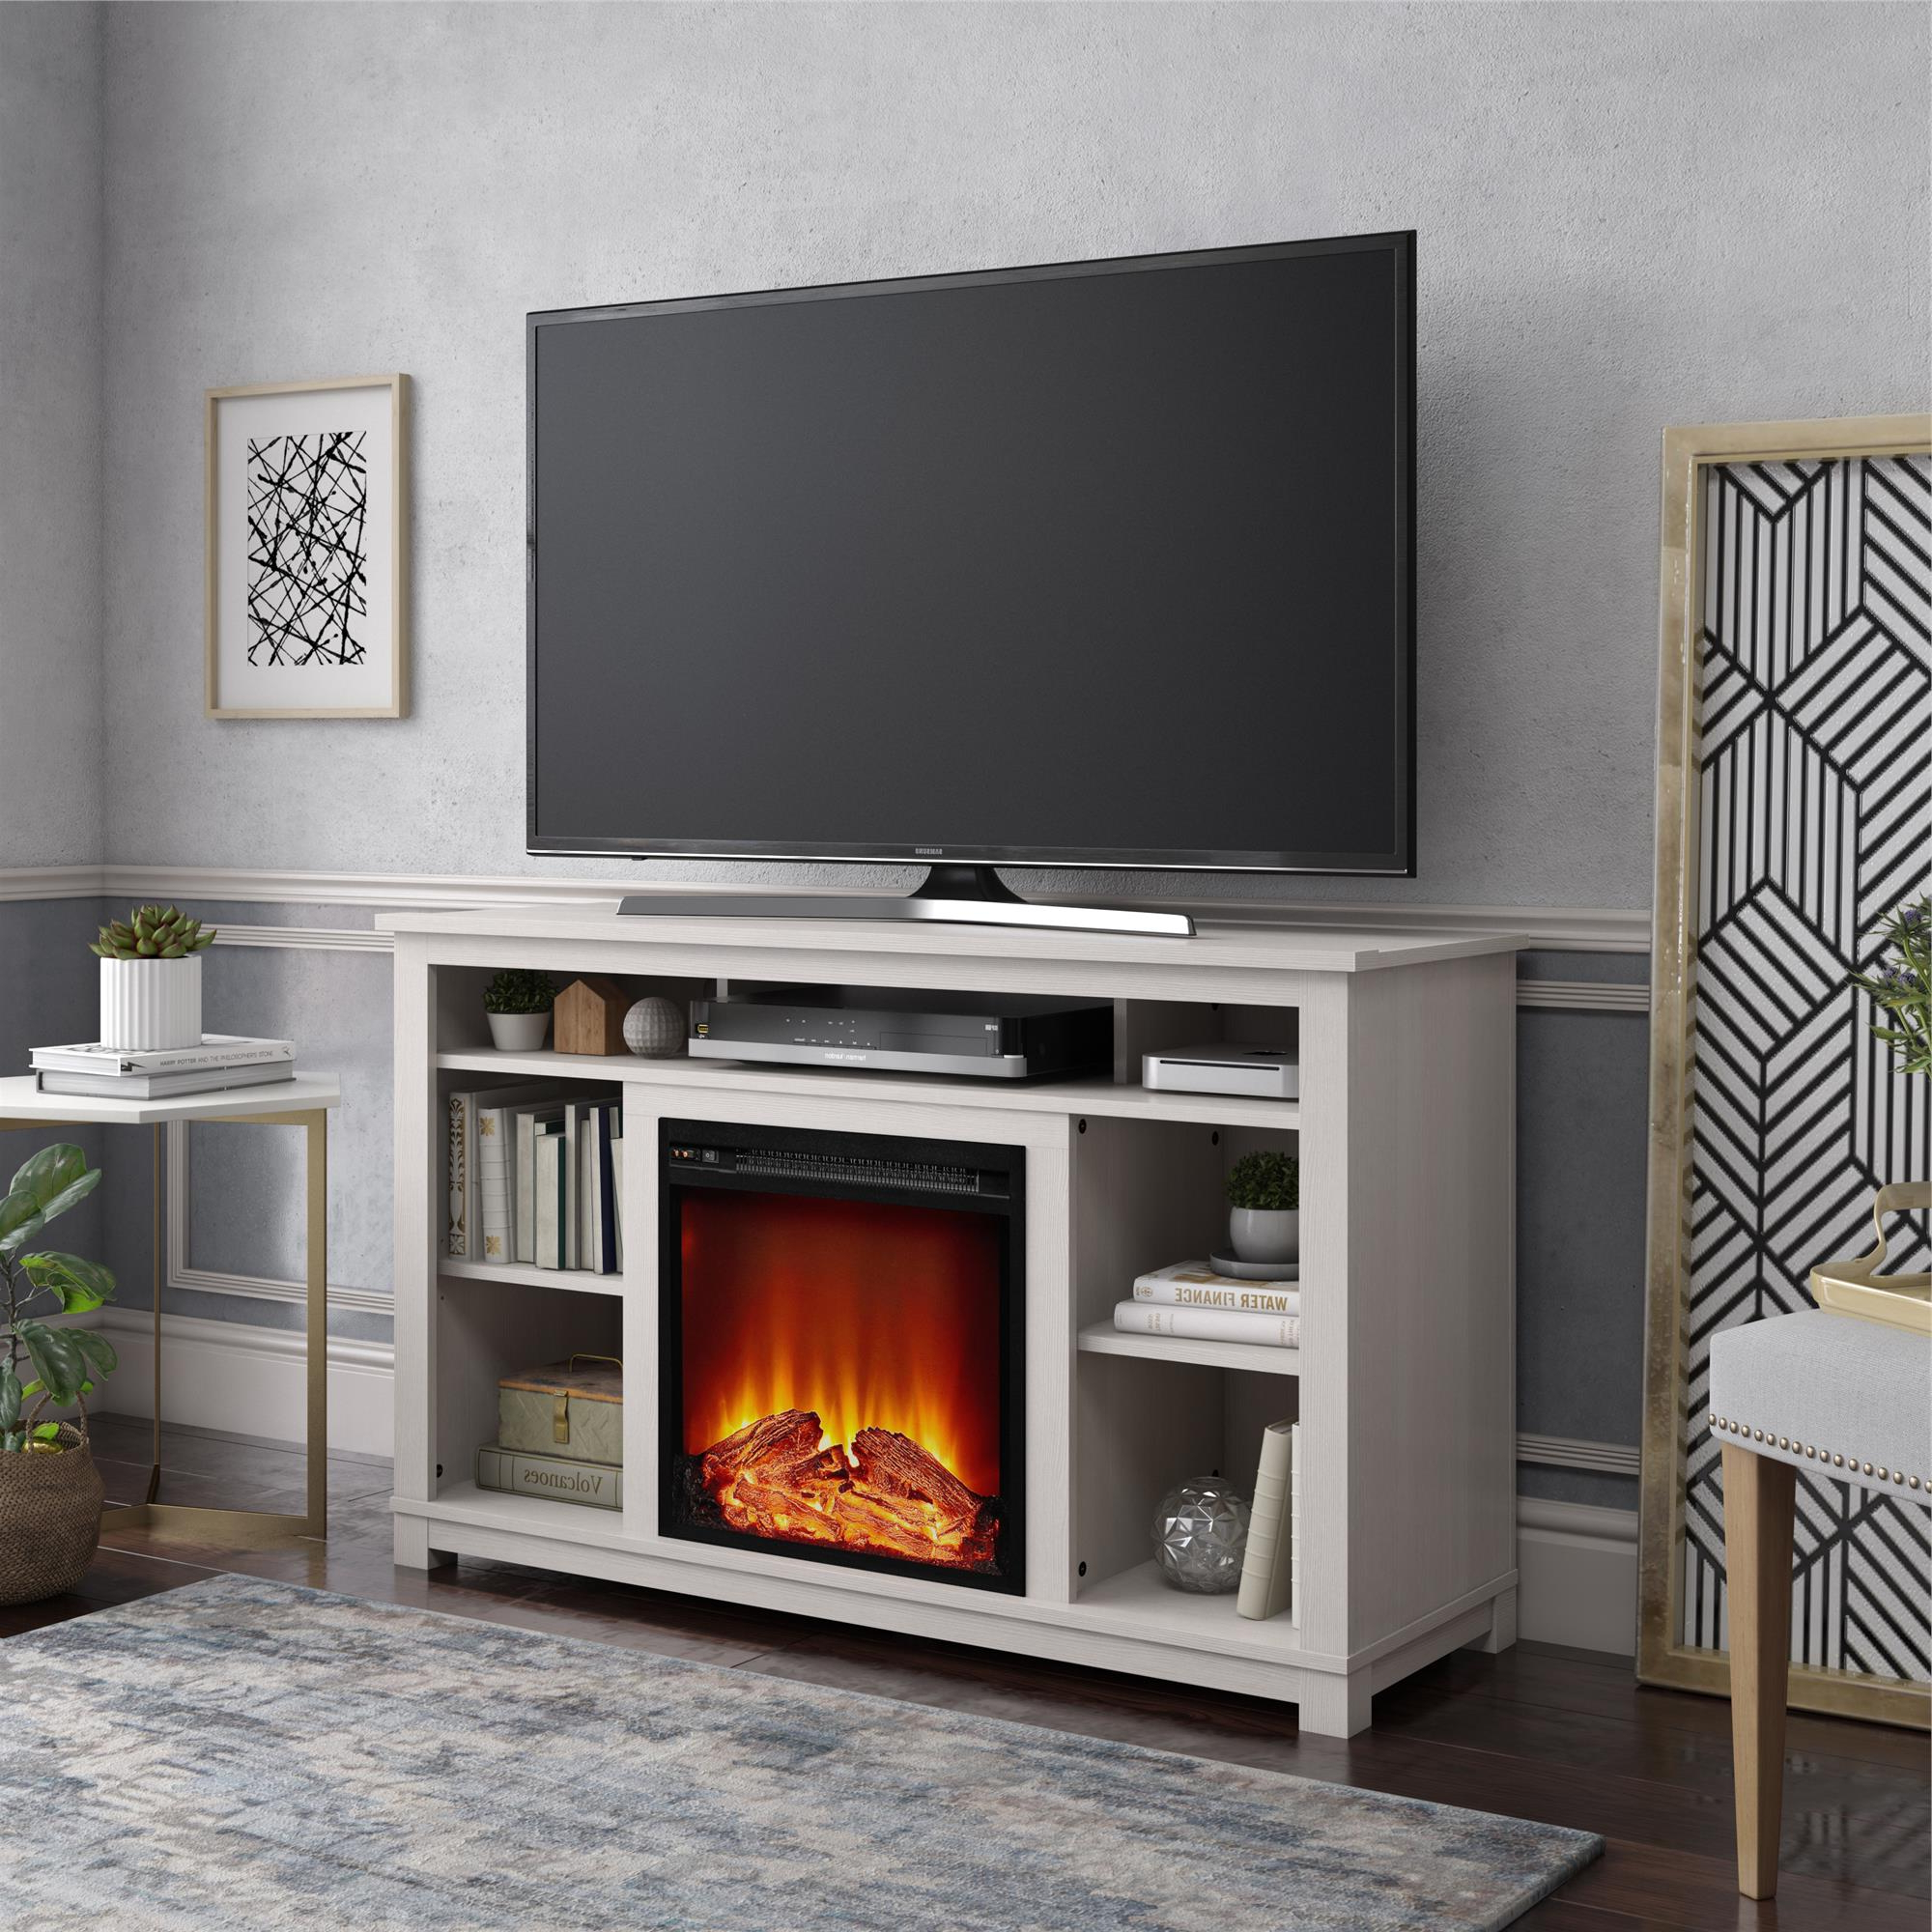 """Ameriwood Home Edgewood Fireplace Tv Stand For Tvs Up To With Regard To Twila Tv Stands For Tvs Up To 55"""" (View 5 of 20)"""